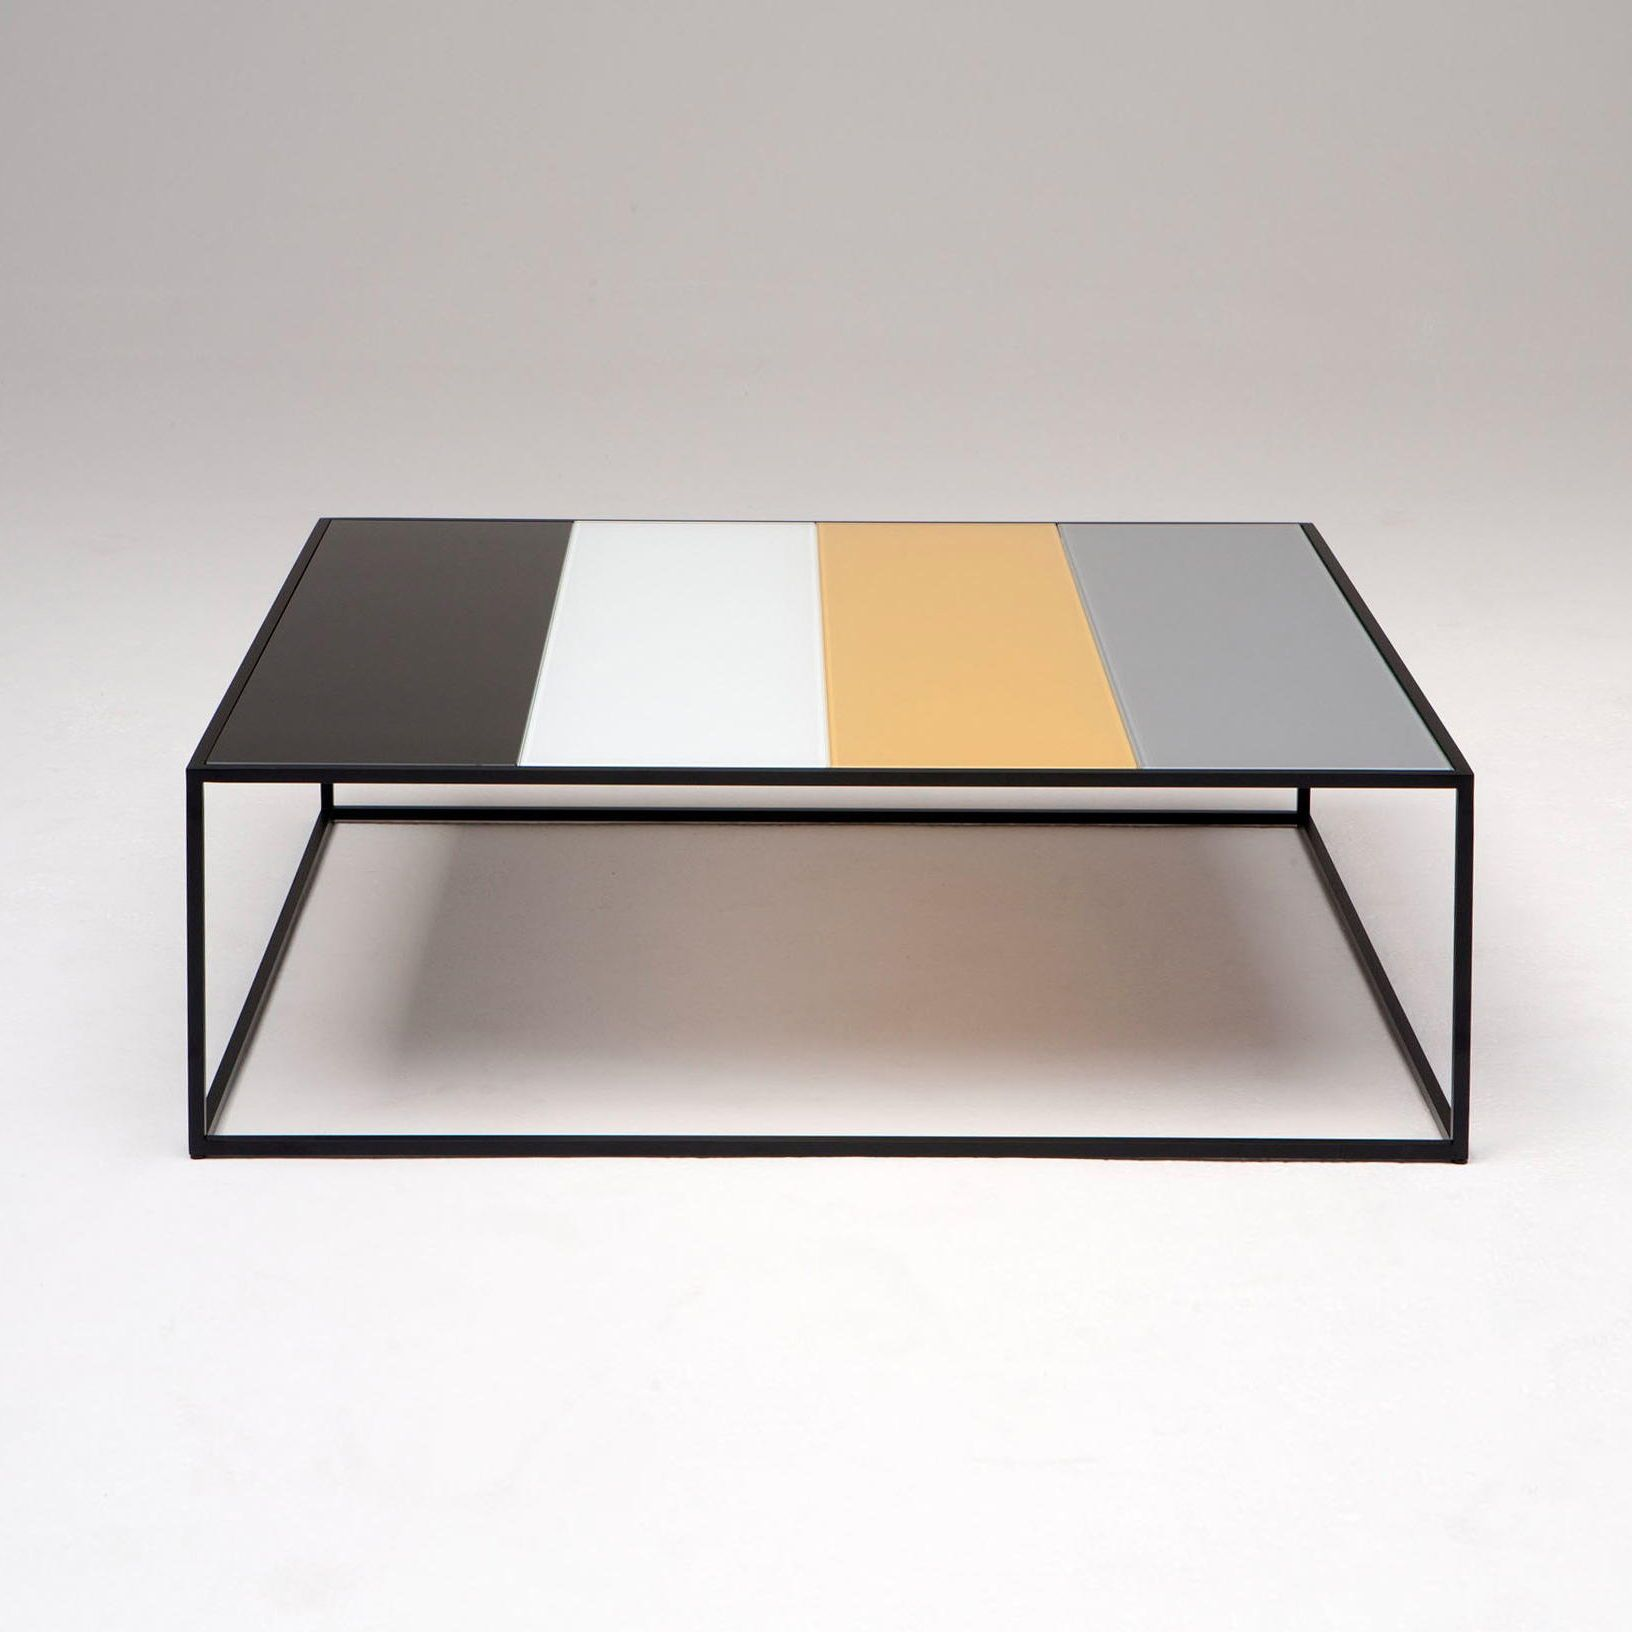 Dailyproductpick The Keys Coffee Table By Phase Design Is Made With Four Different Color Painted Glass Piece Coffee Table Coffee Table Design Furniture Design [ 1632 x 1632 Pixel ]